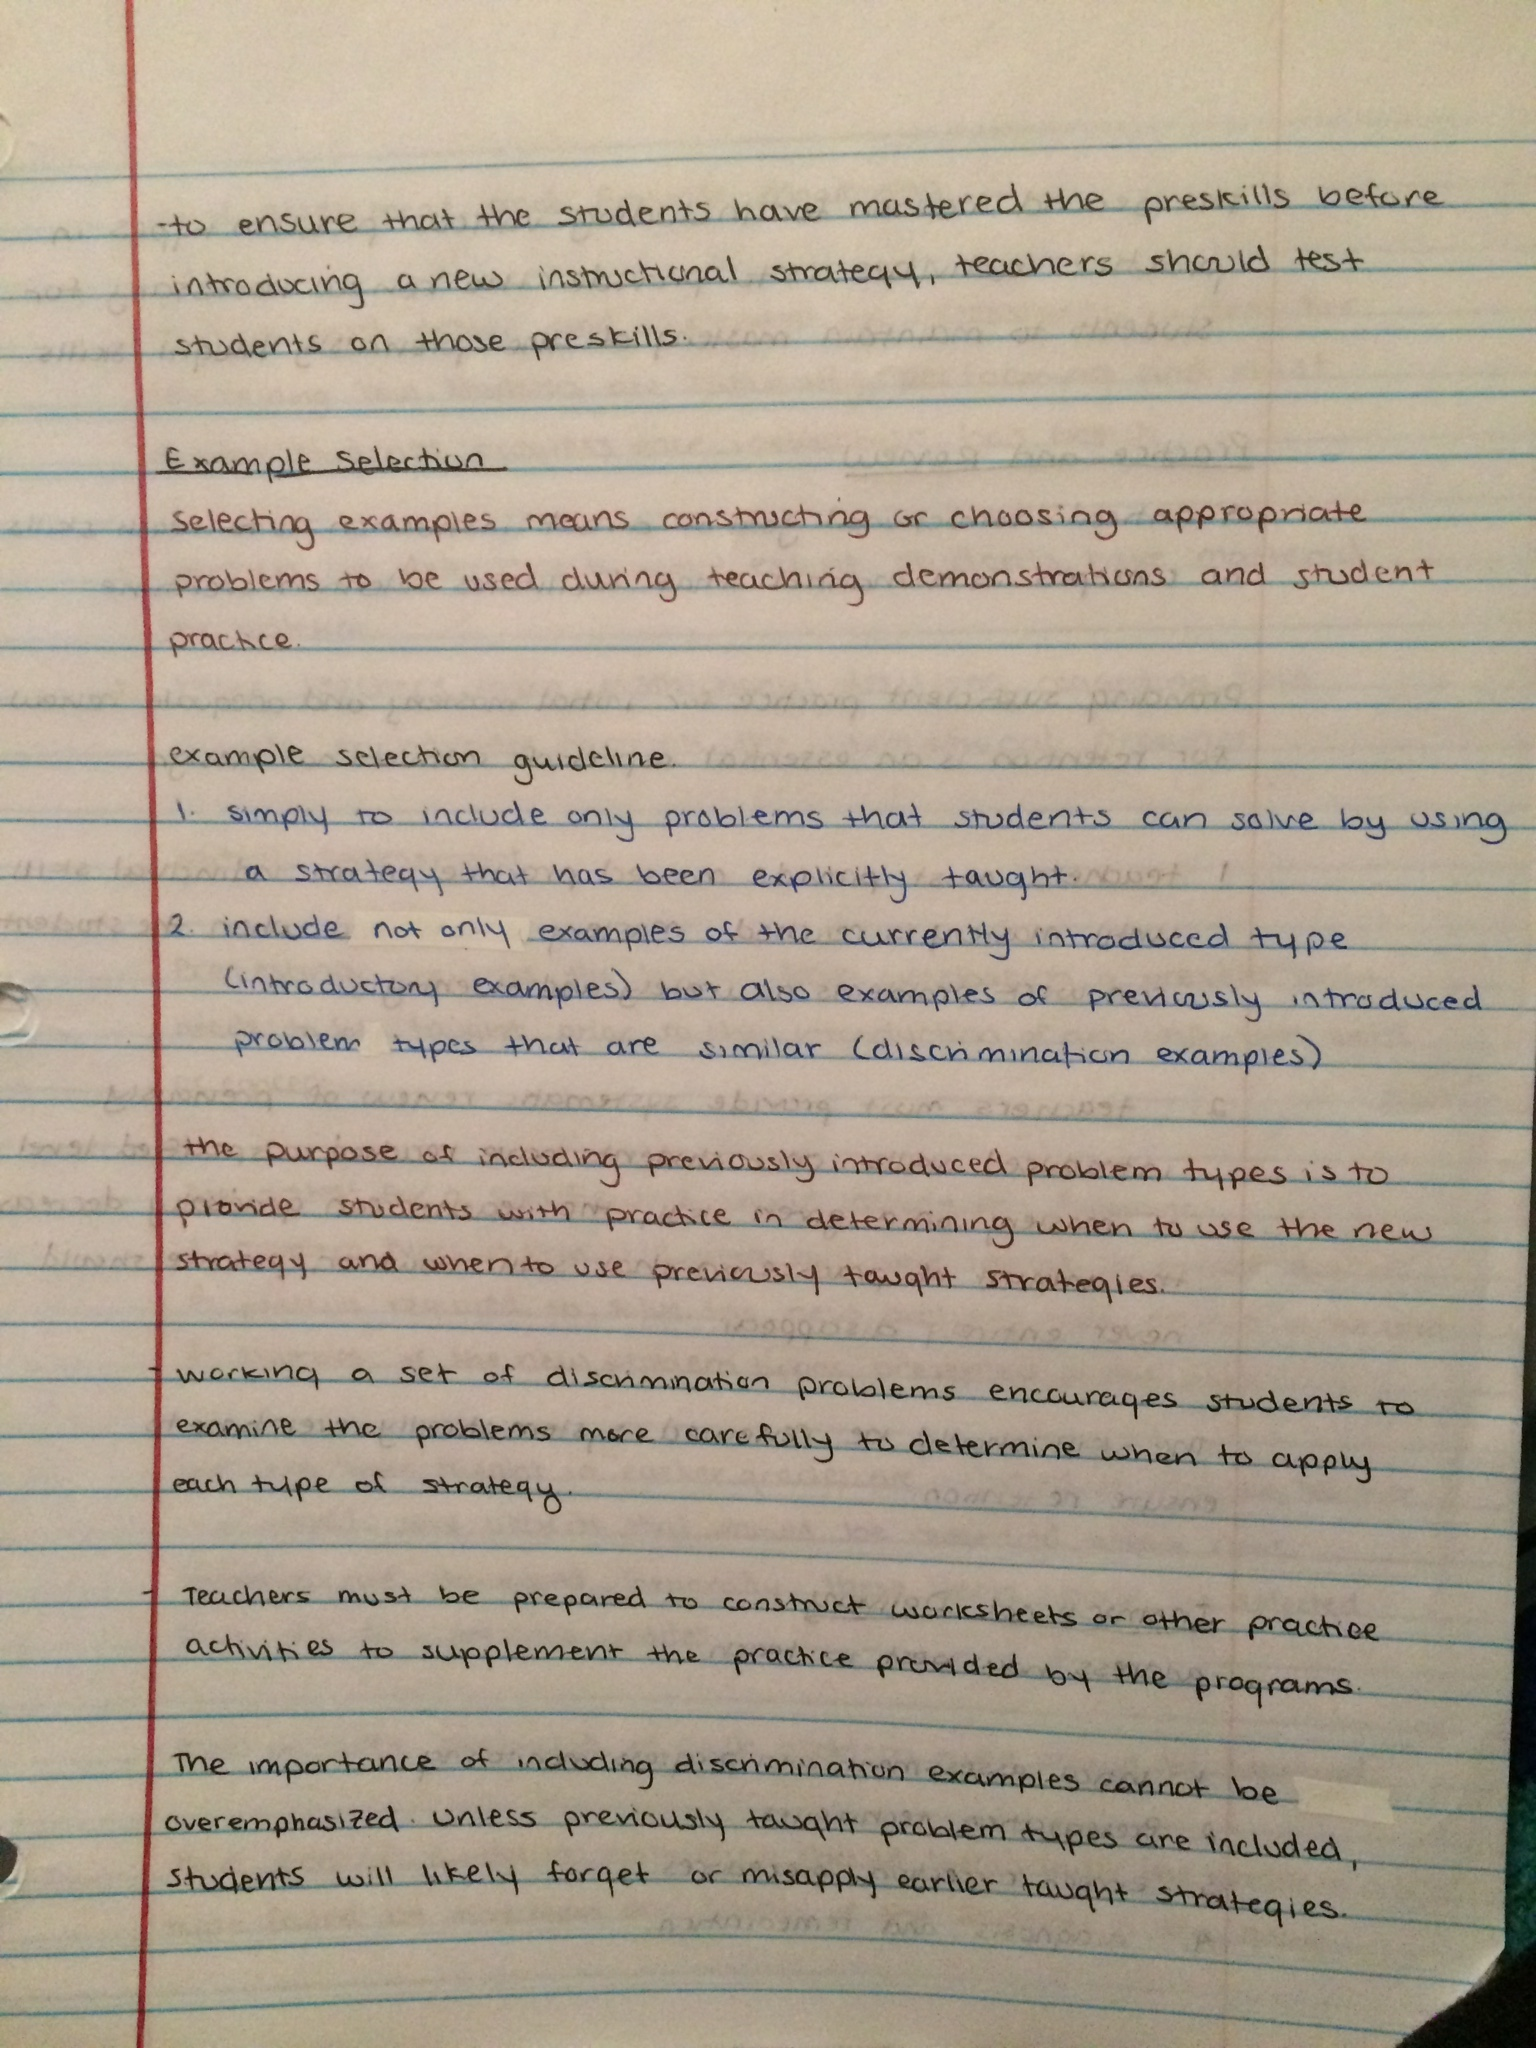 SPED 482 - Class Notes - Week 1